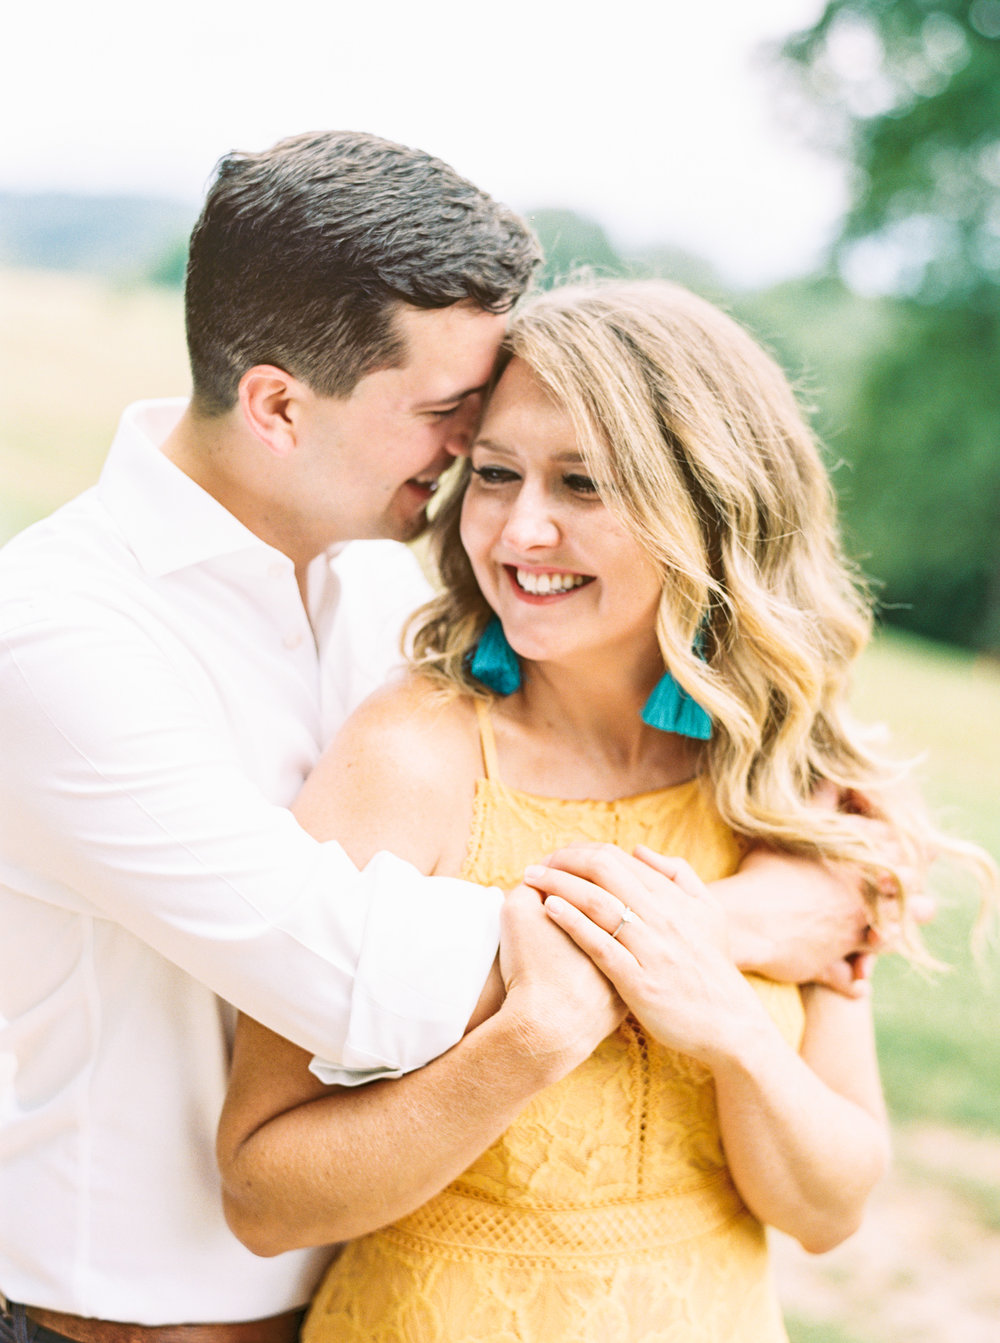 Biltmore-Estate-Engagment-Session-in-Asheville-NC-26.jpg